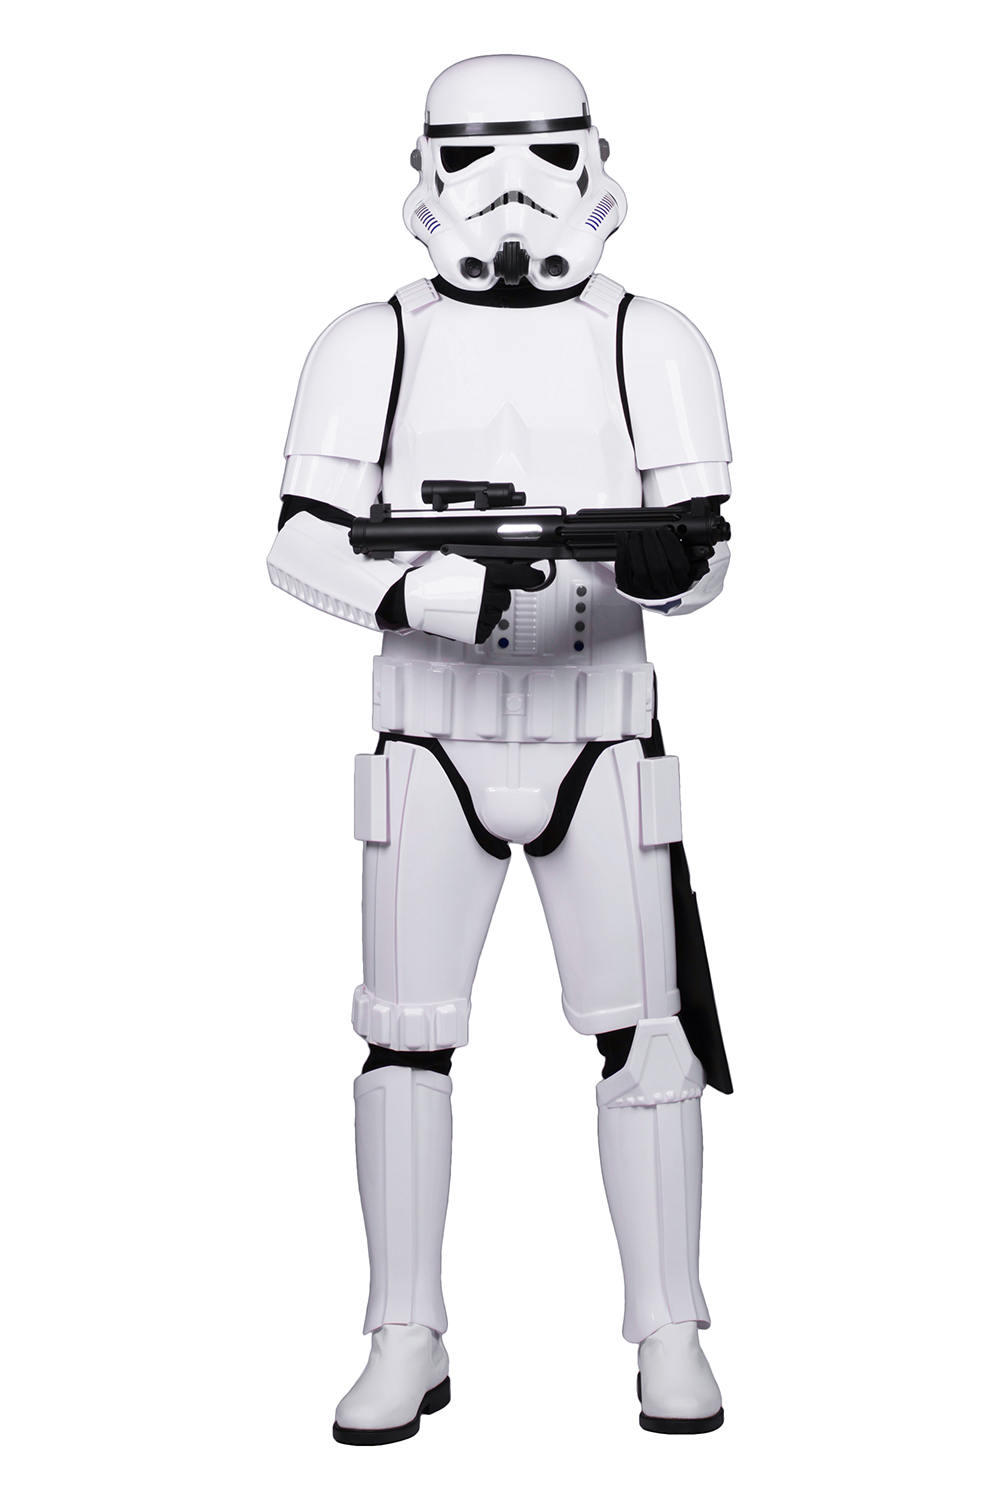 Stormtrooper Costume Armour Packages available at www.Stormtrooper-Costumes.com - The Stormtrooper Shop